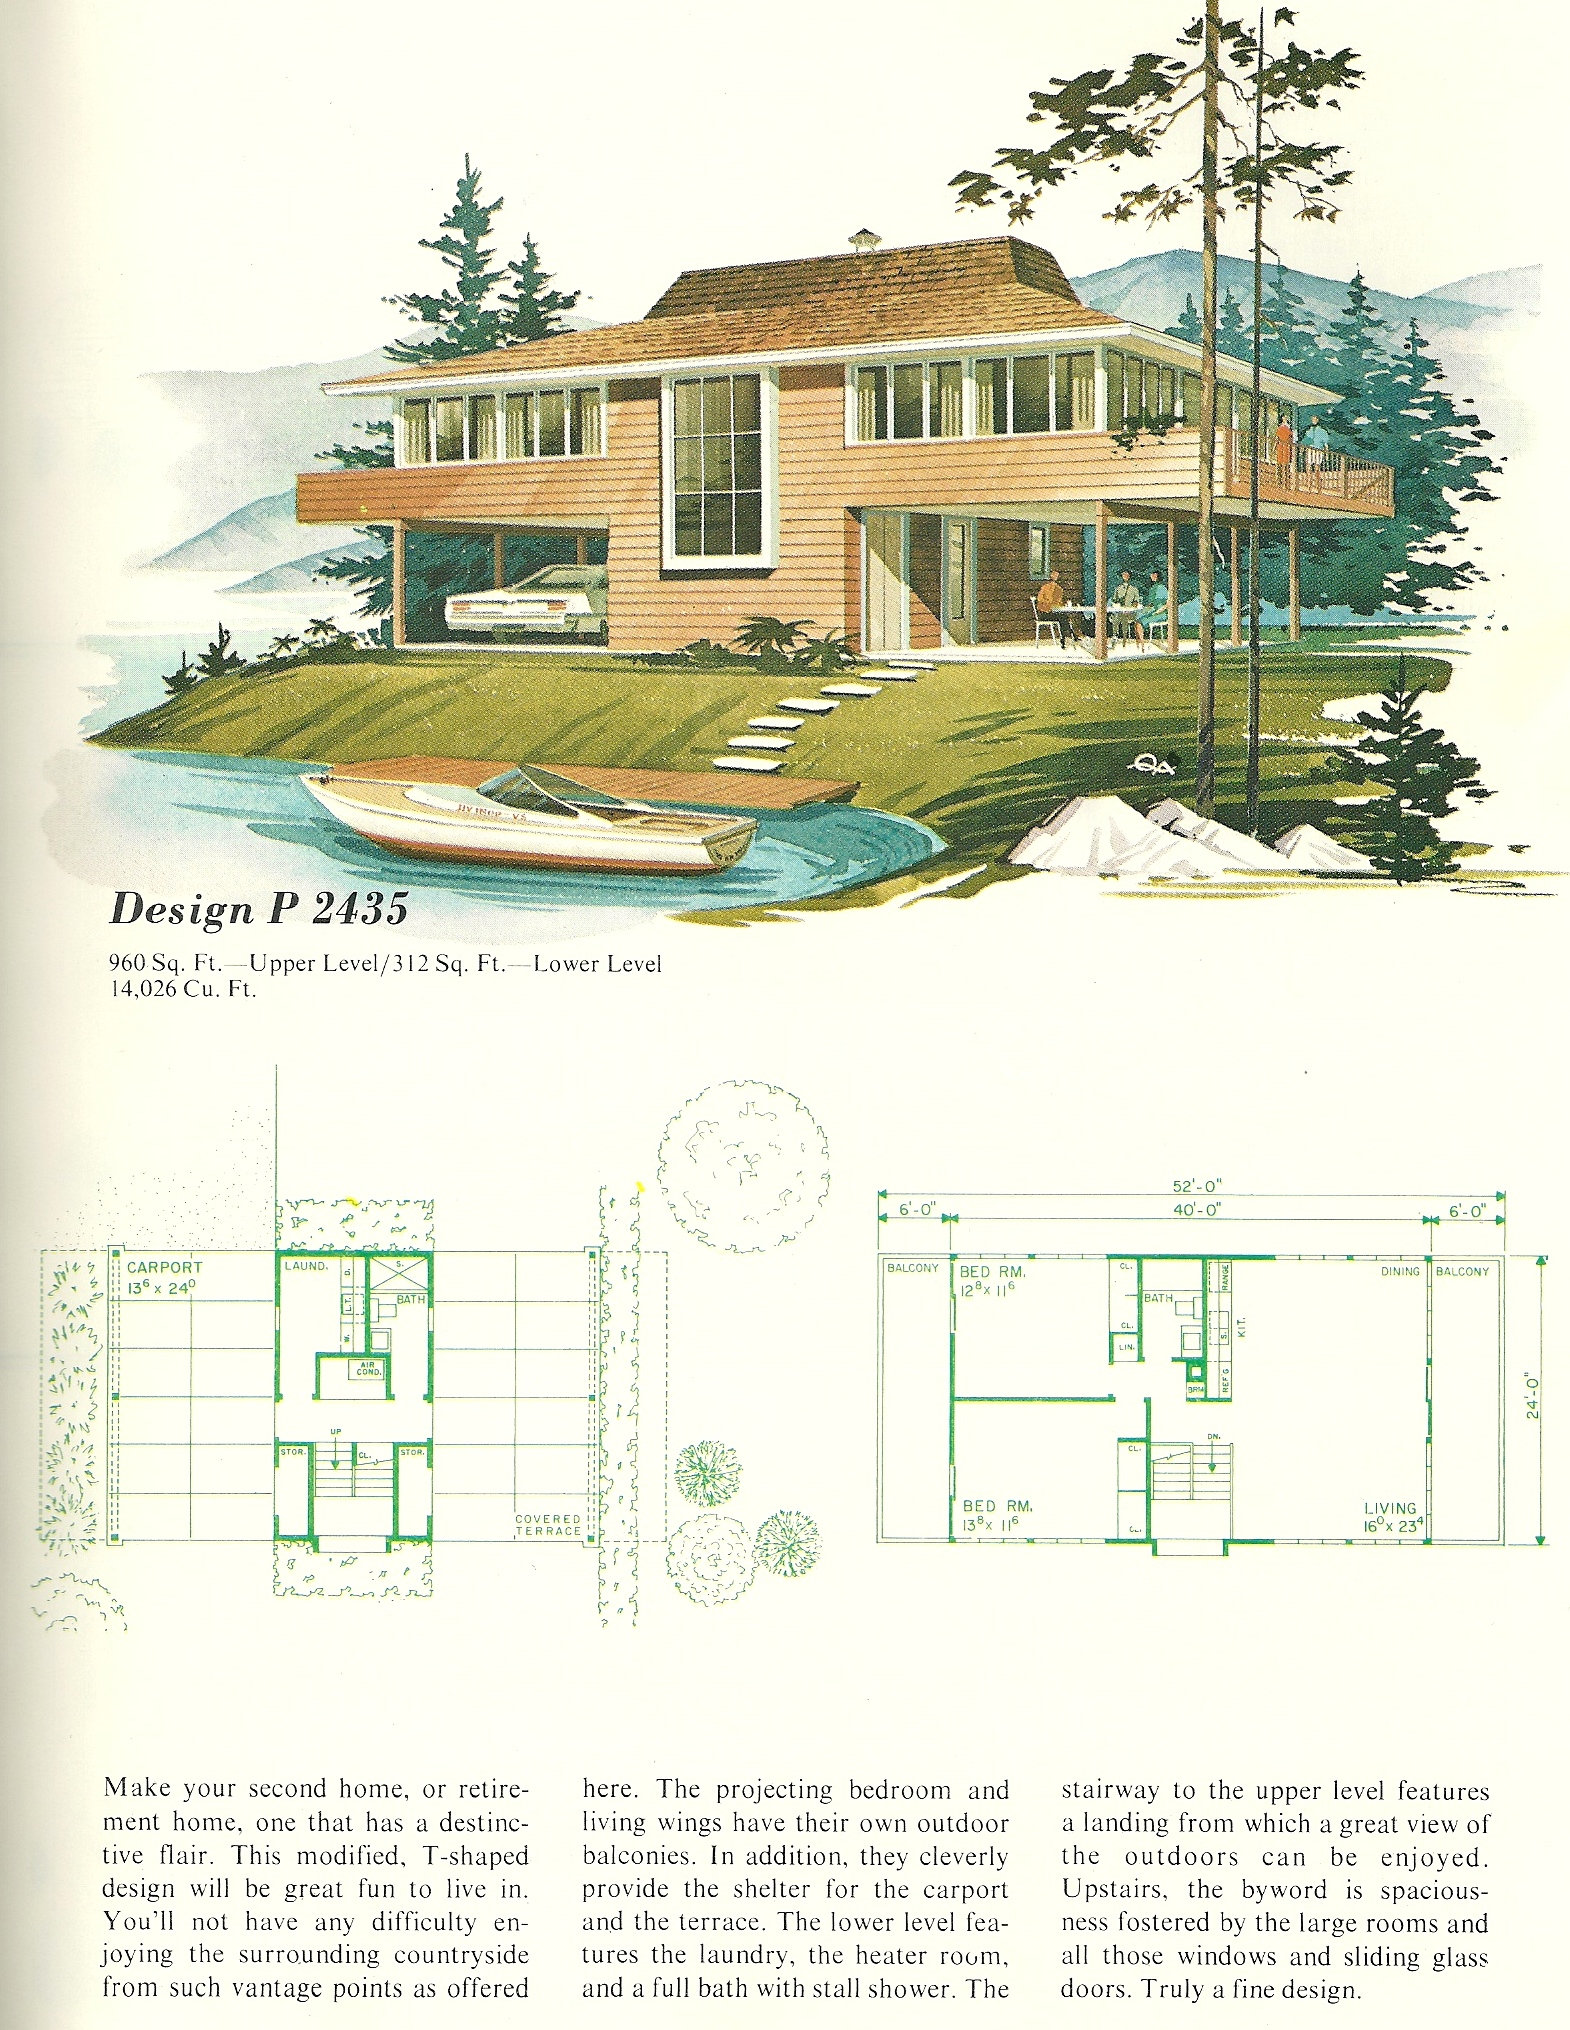 Vintage house plans vacation homes 2435 antique alter ego for Vacation house plans